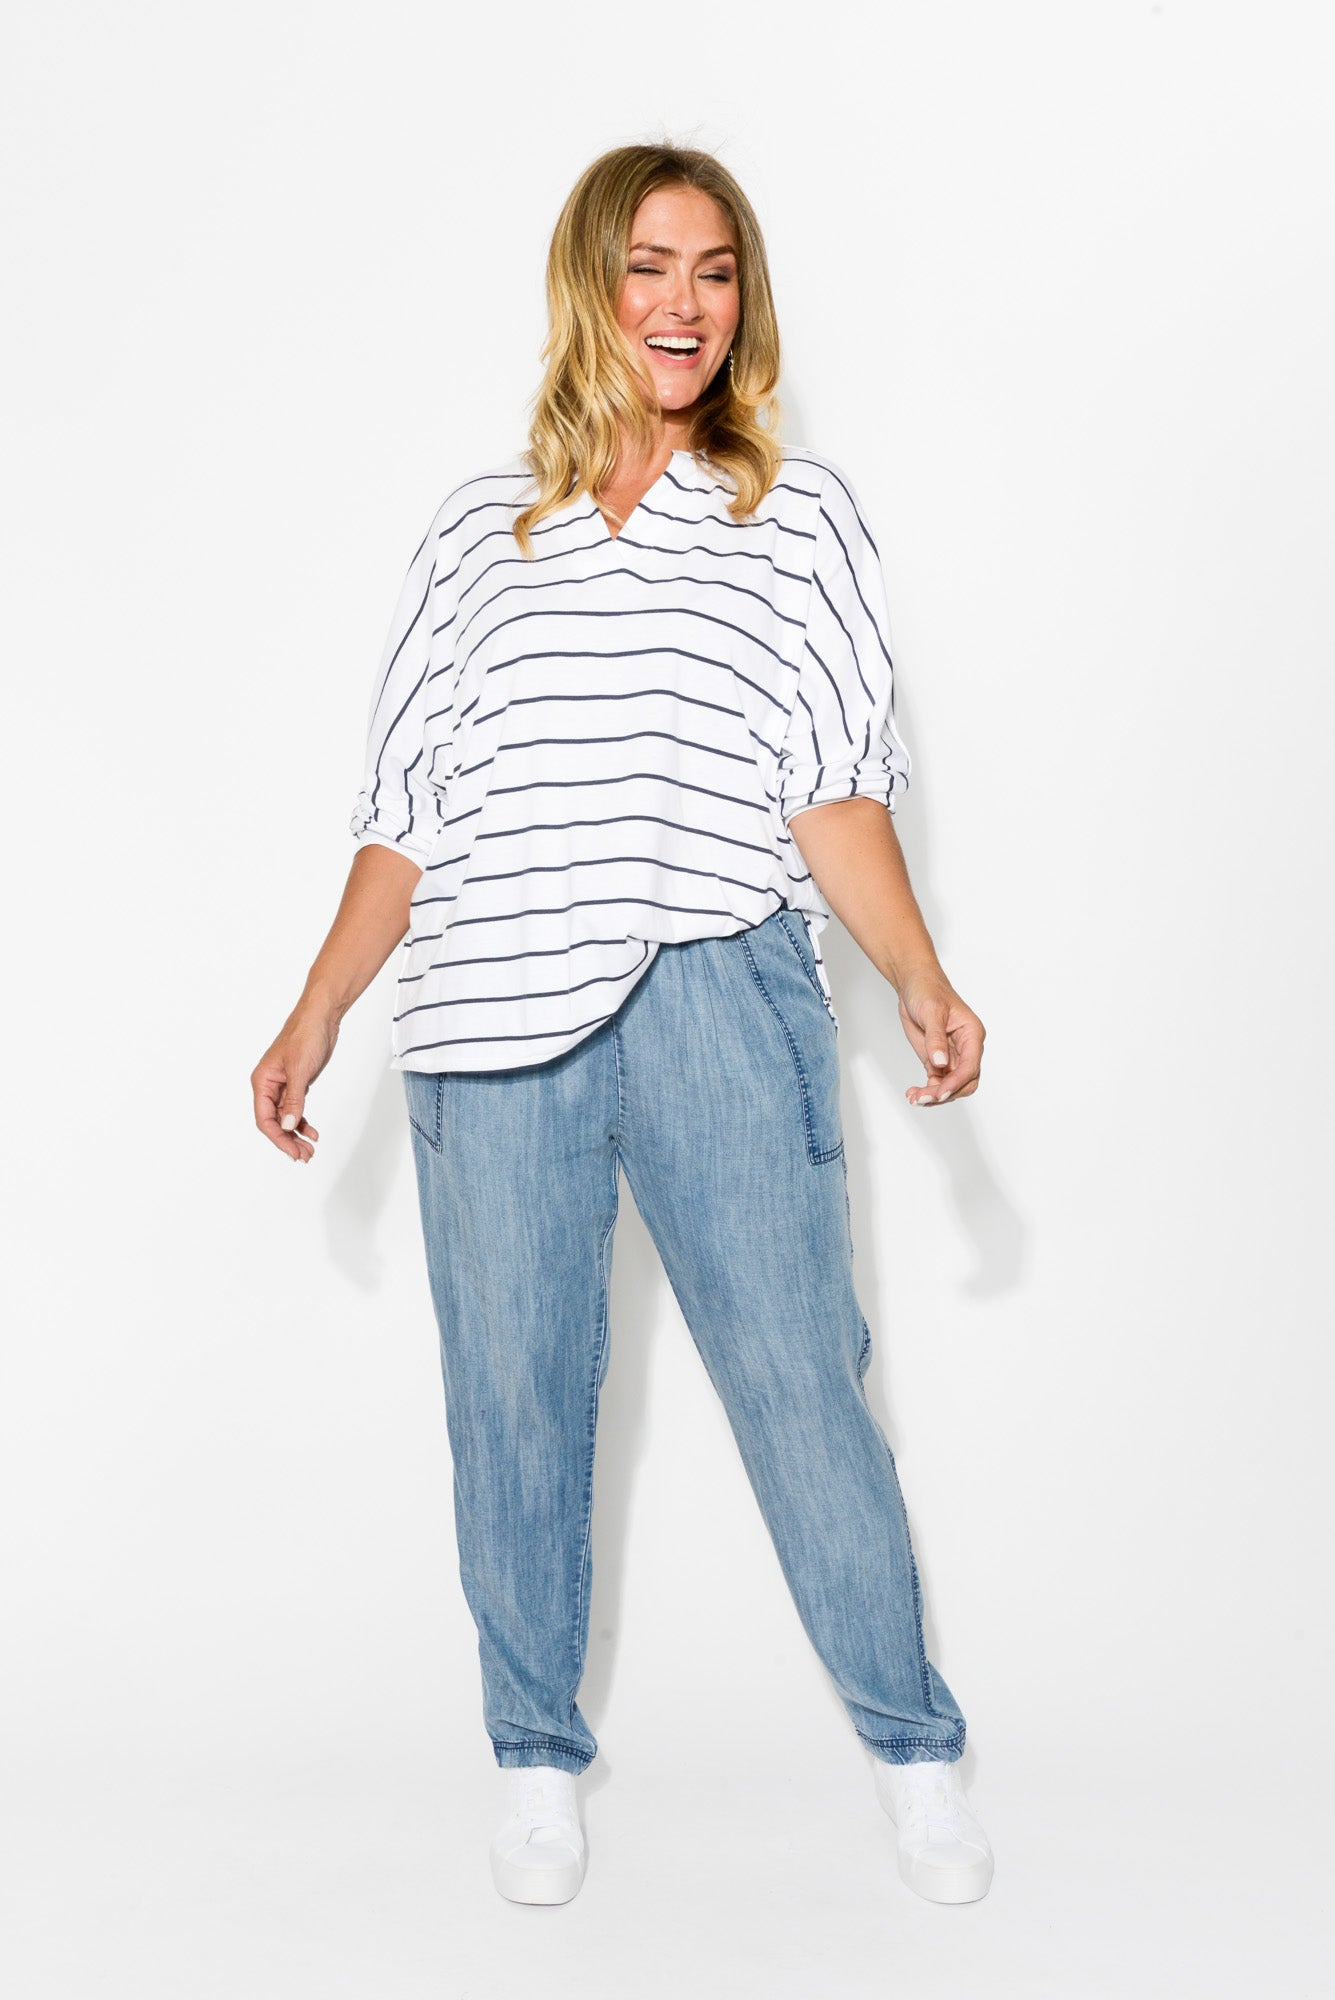 Maya Navy Stripe Bamboo Cotton Top - Blue Bungalow